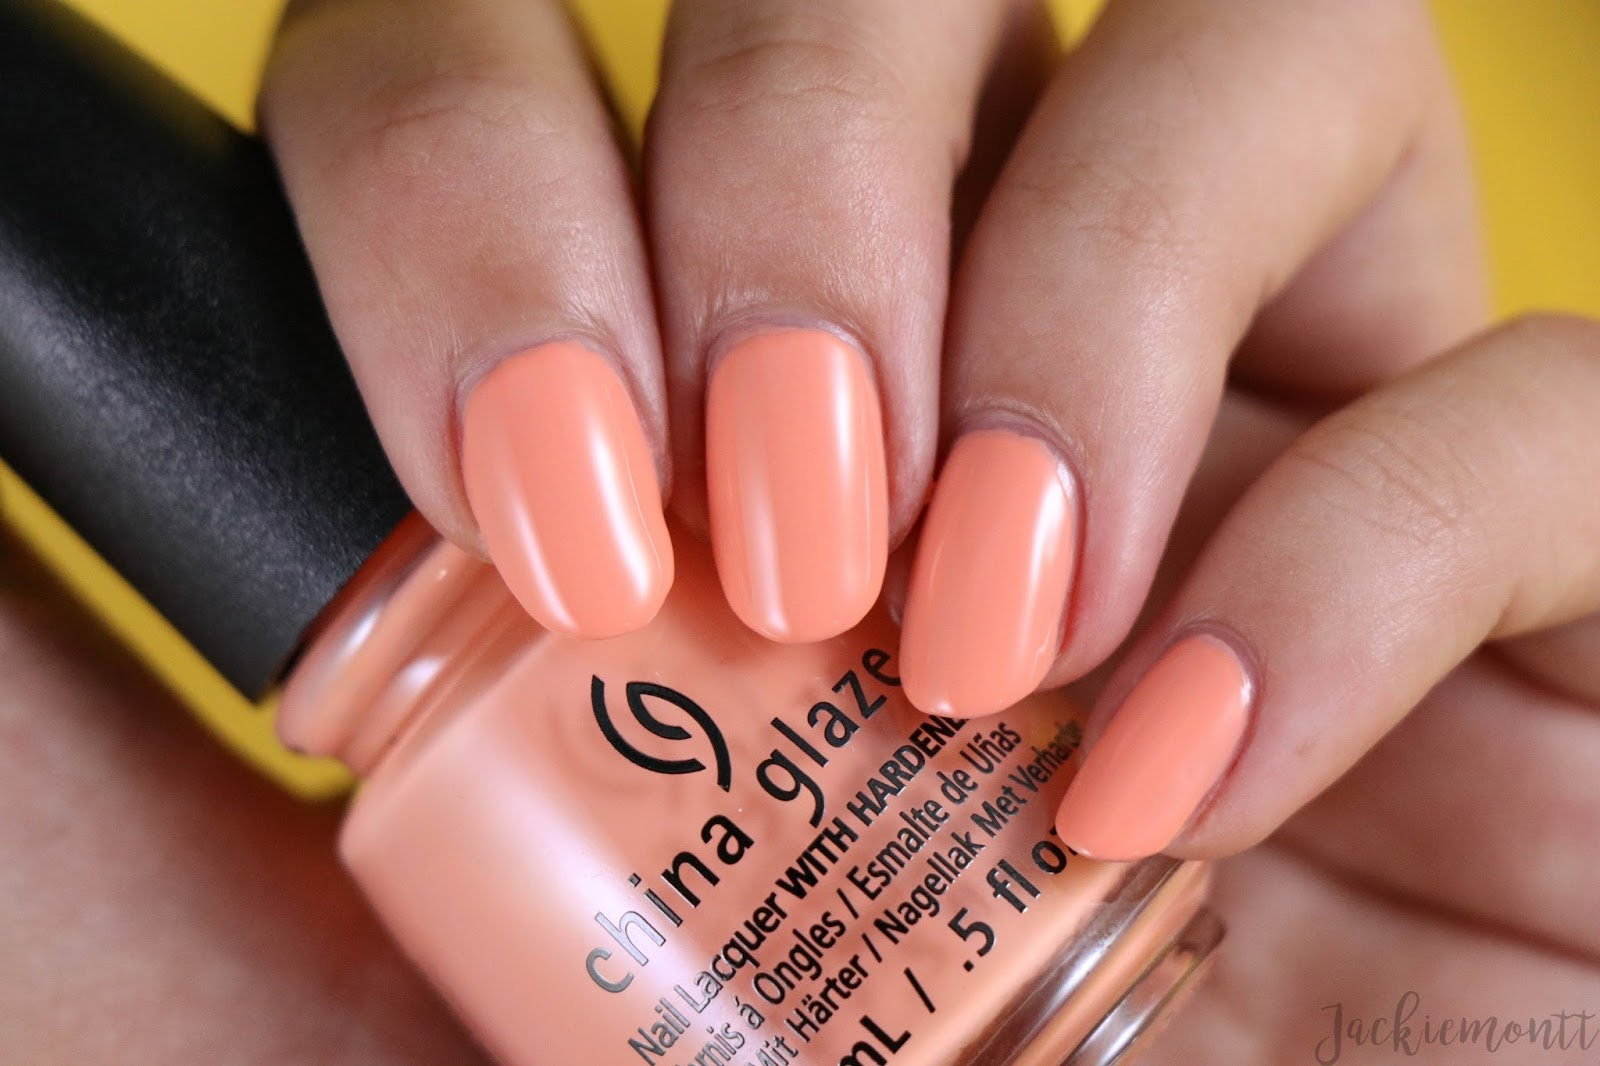 China Glaze Chic Physique Collection Swatches and Review - JACKIEMONTT